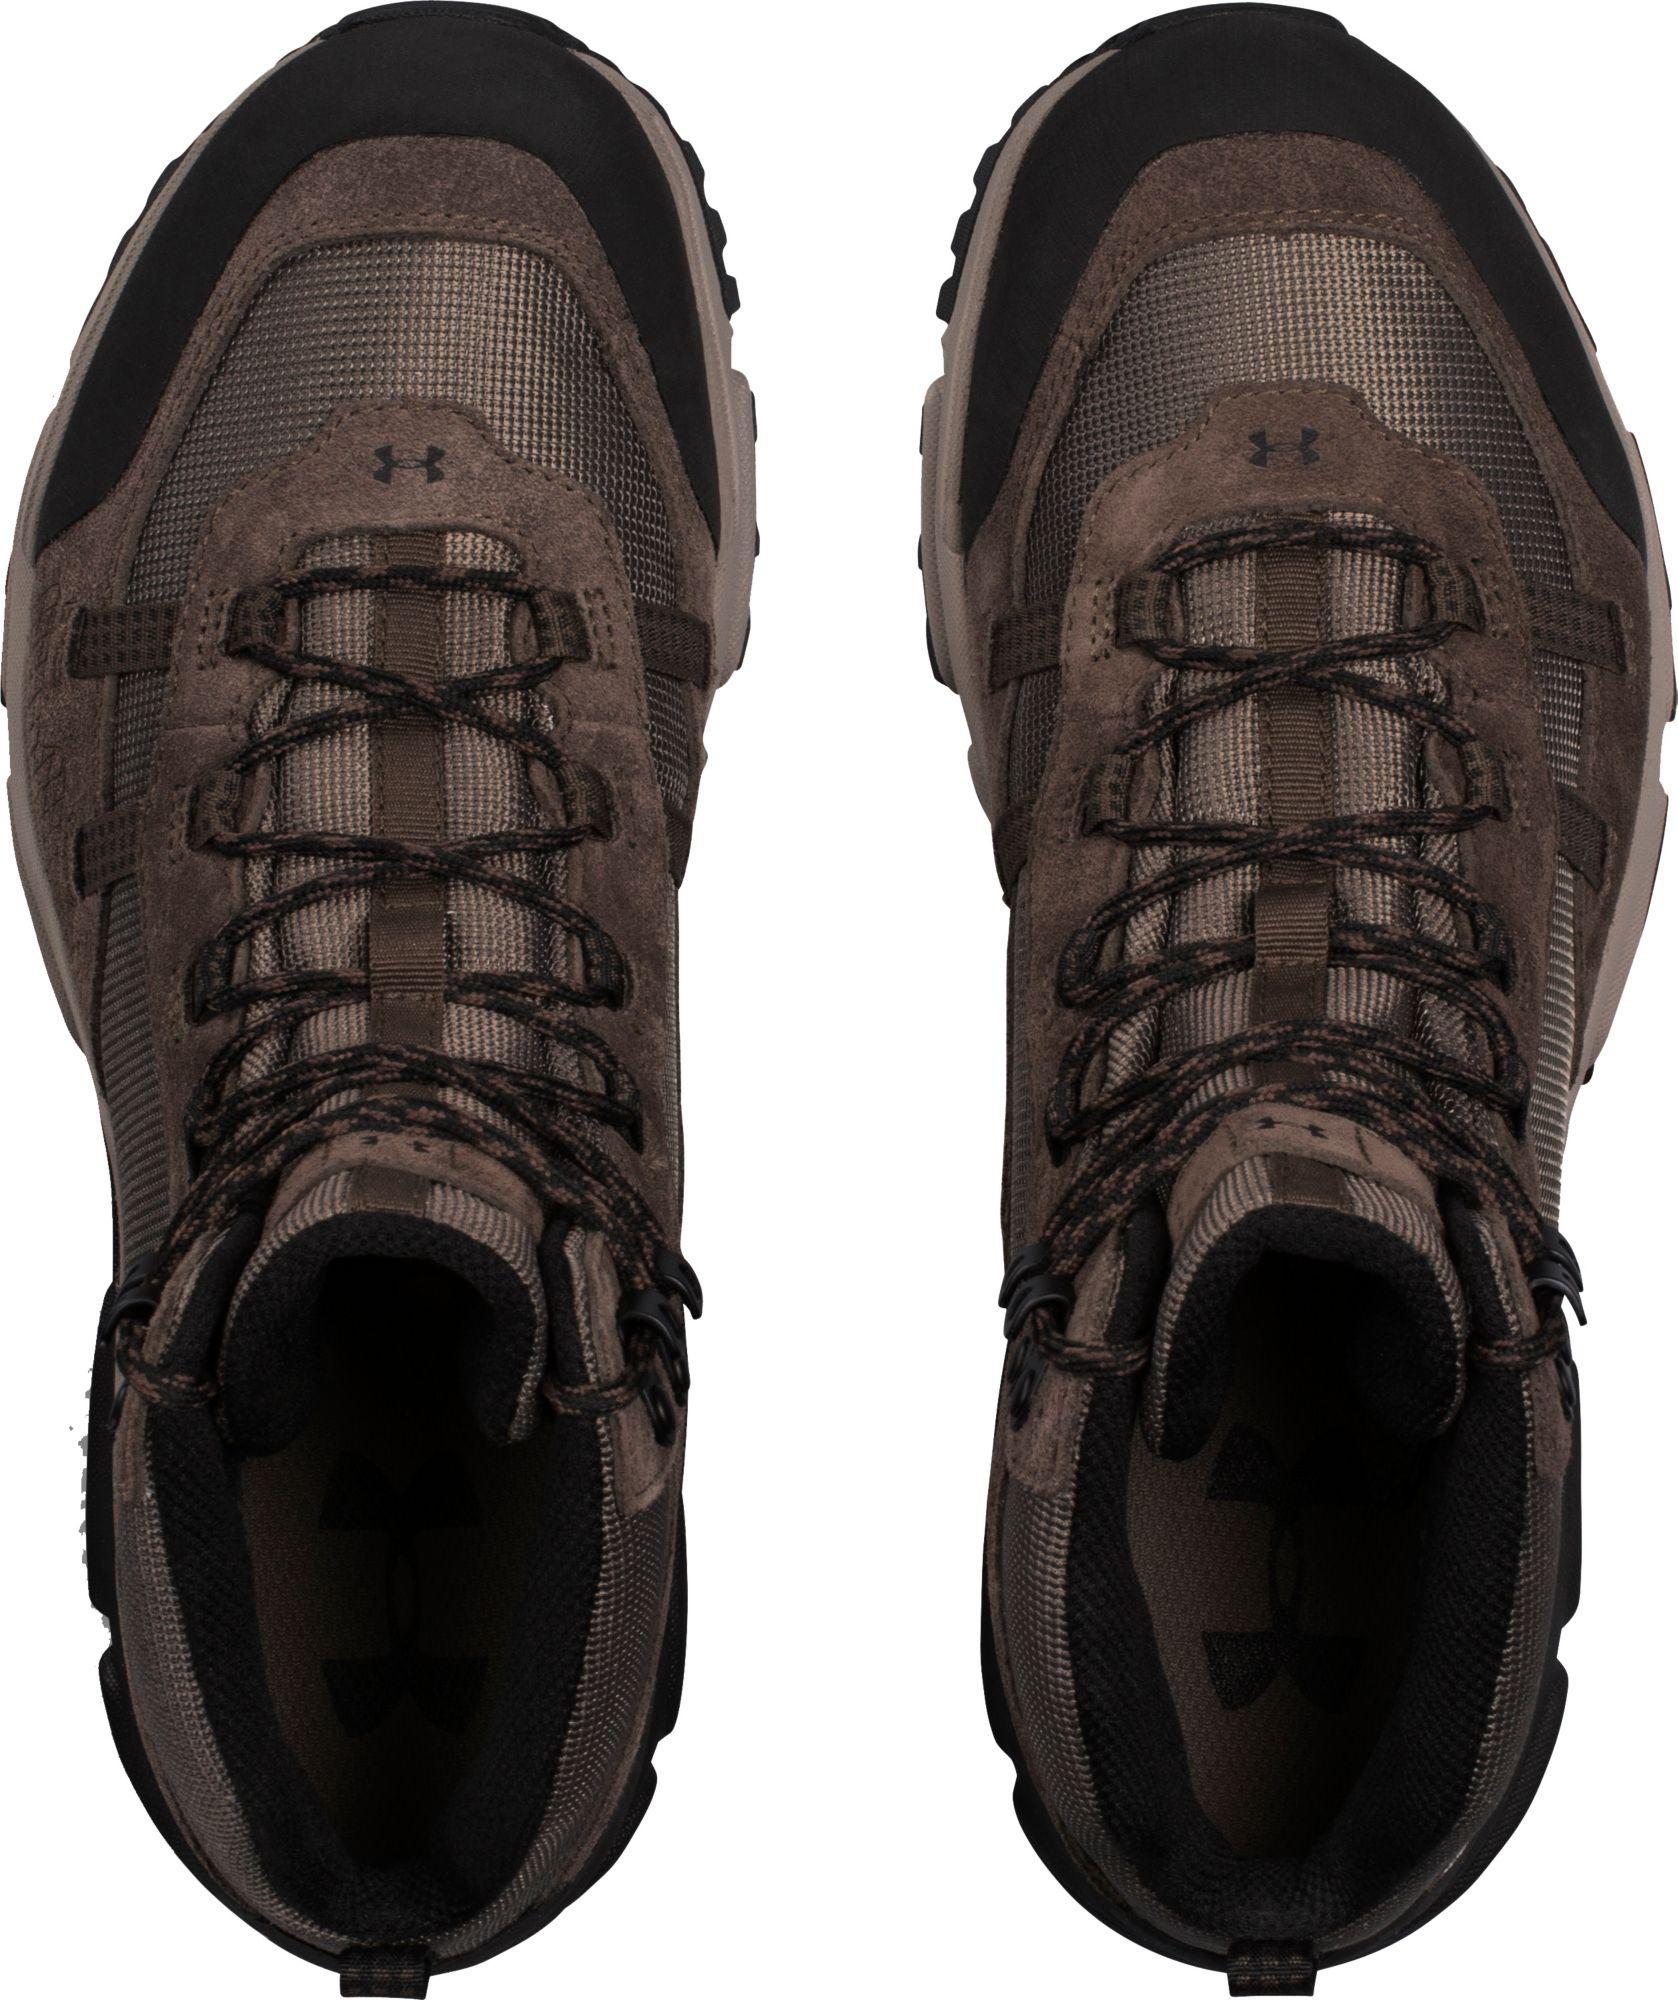 86f4ae09679 Under Armour Brown Defiance Mid Waterproof Hiking Boots for men